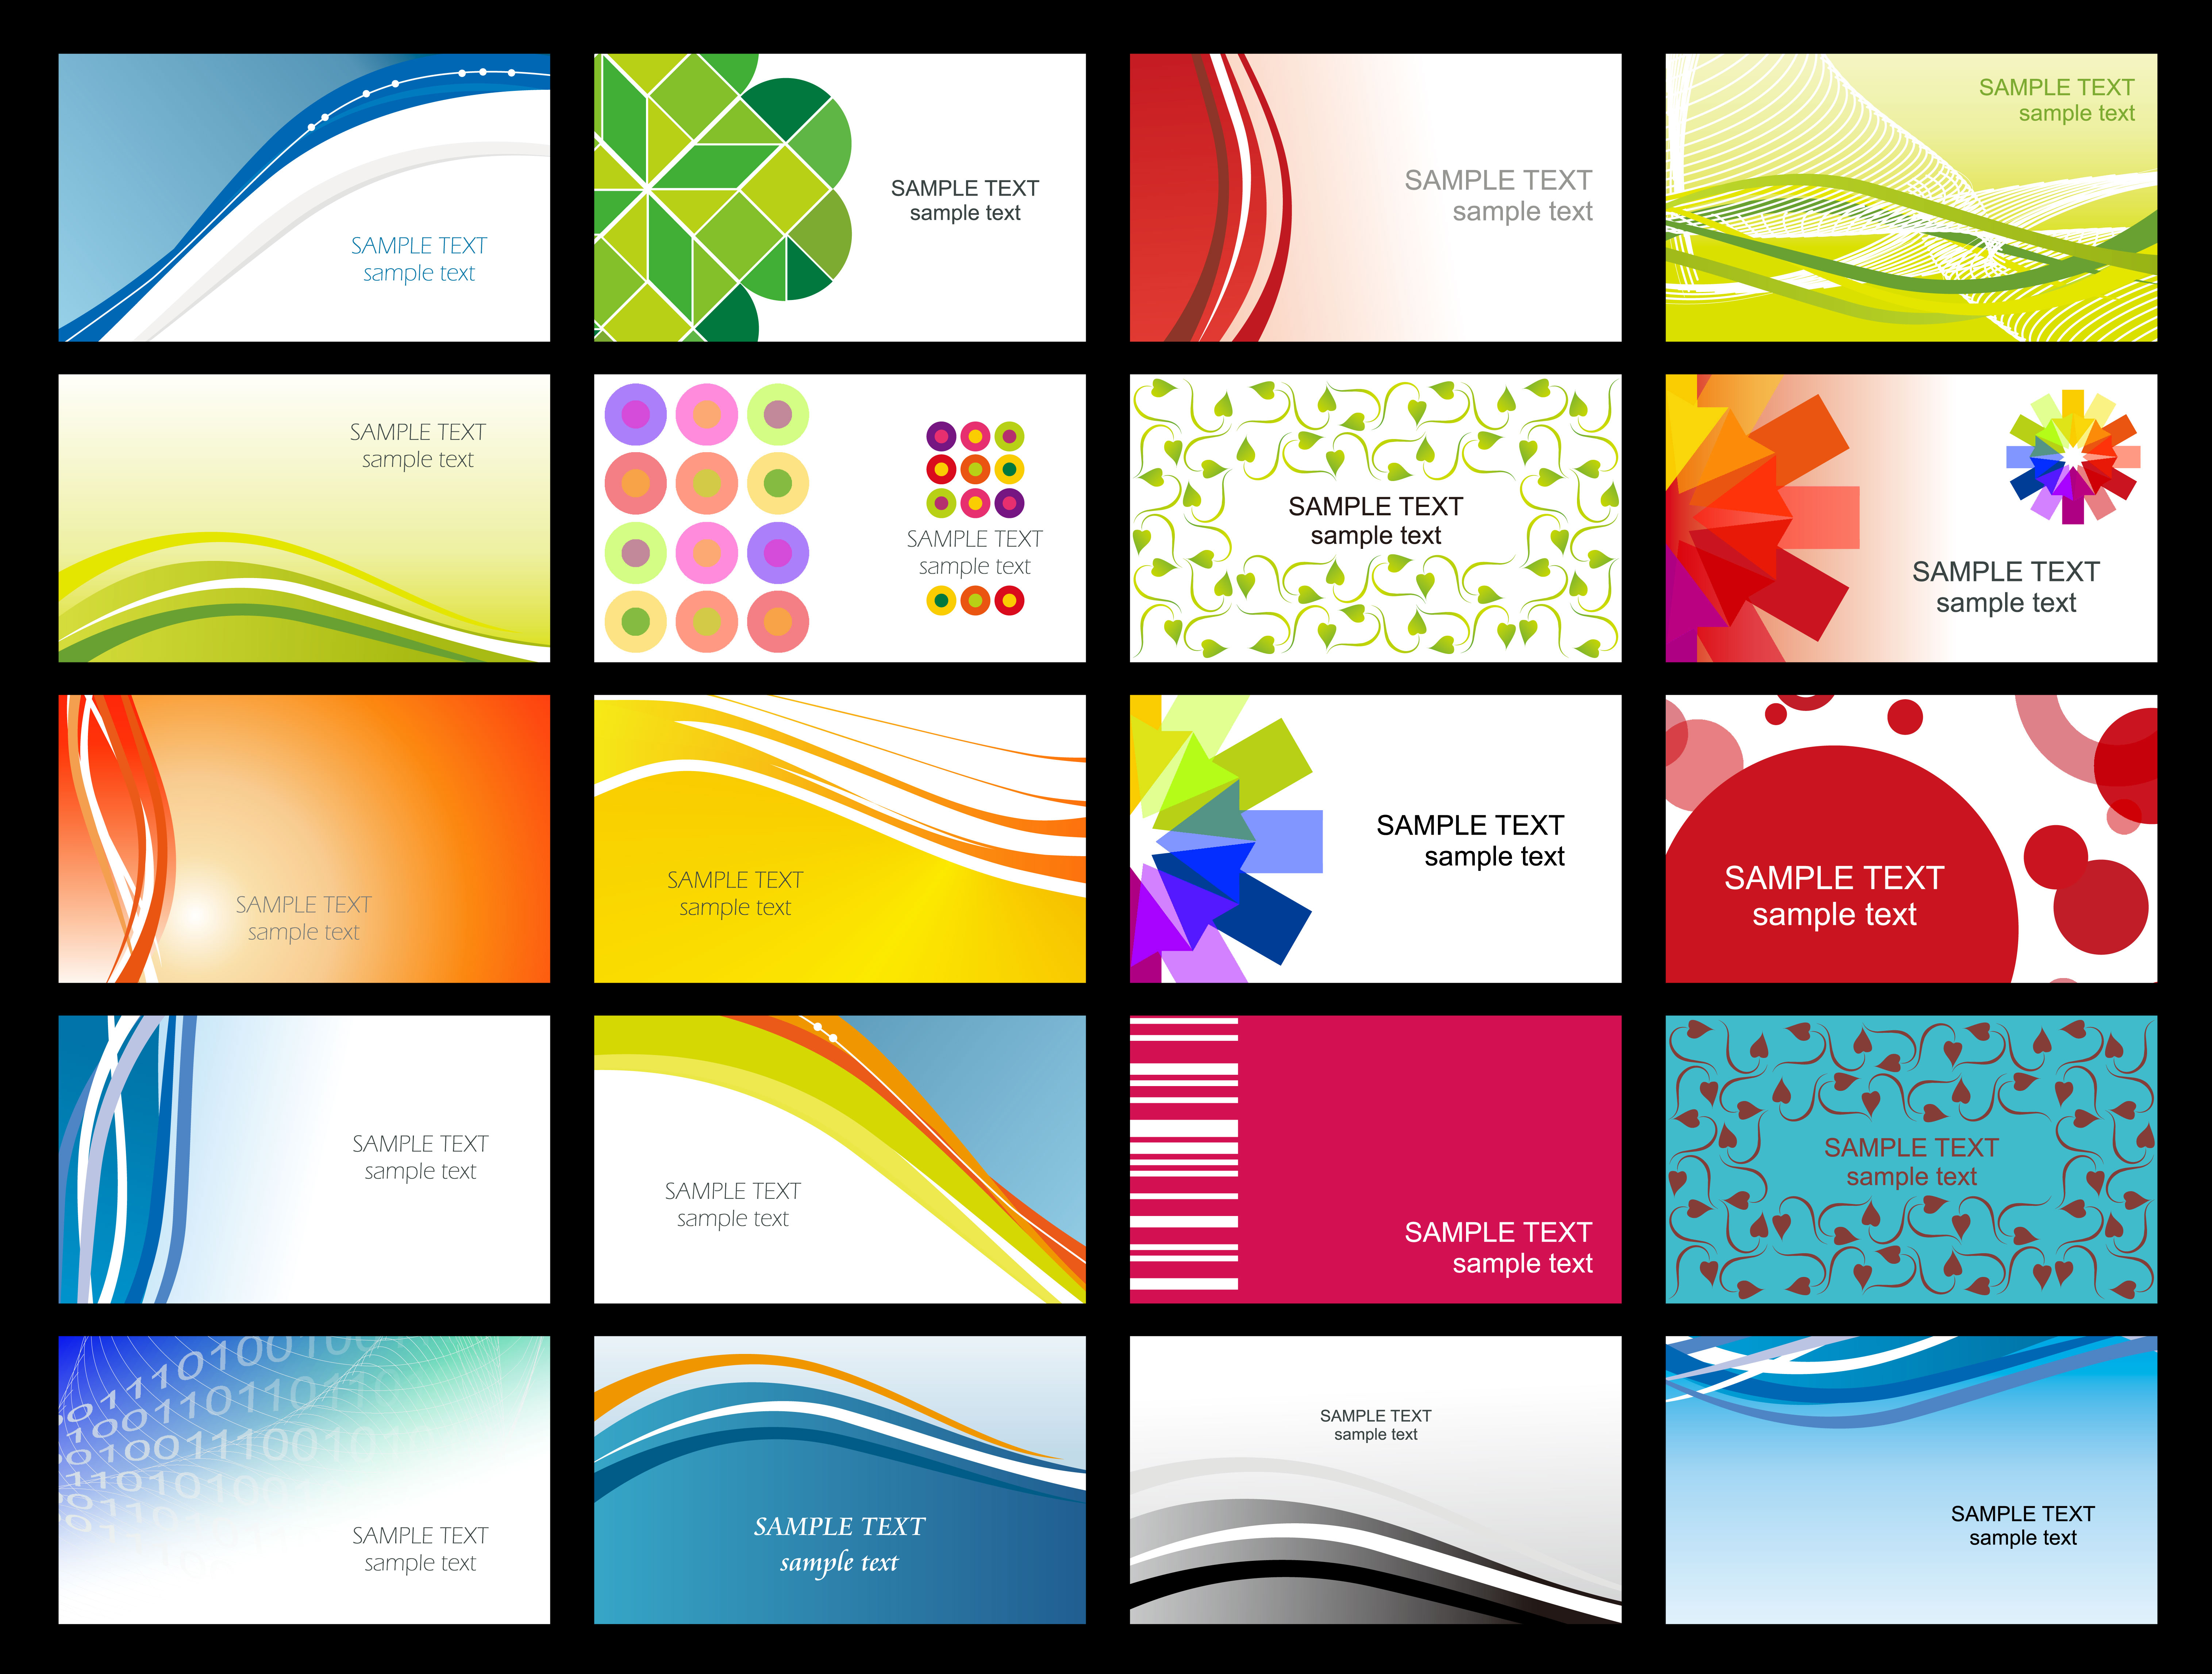 Free Printable Business Card Templates Sample | Get Sniffer - Free Printable Blank Business Cards